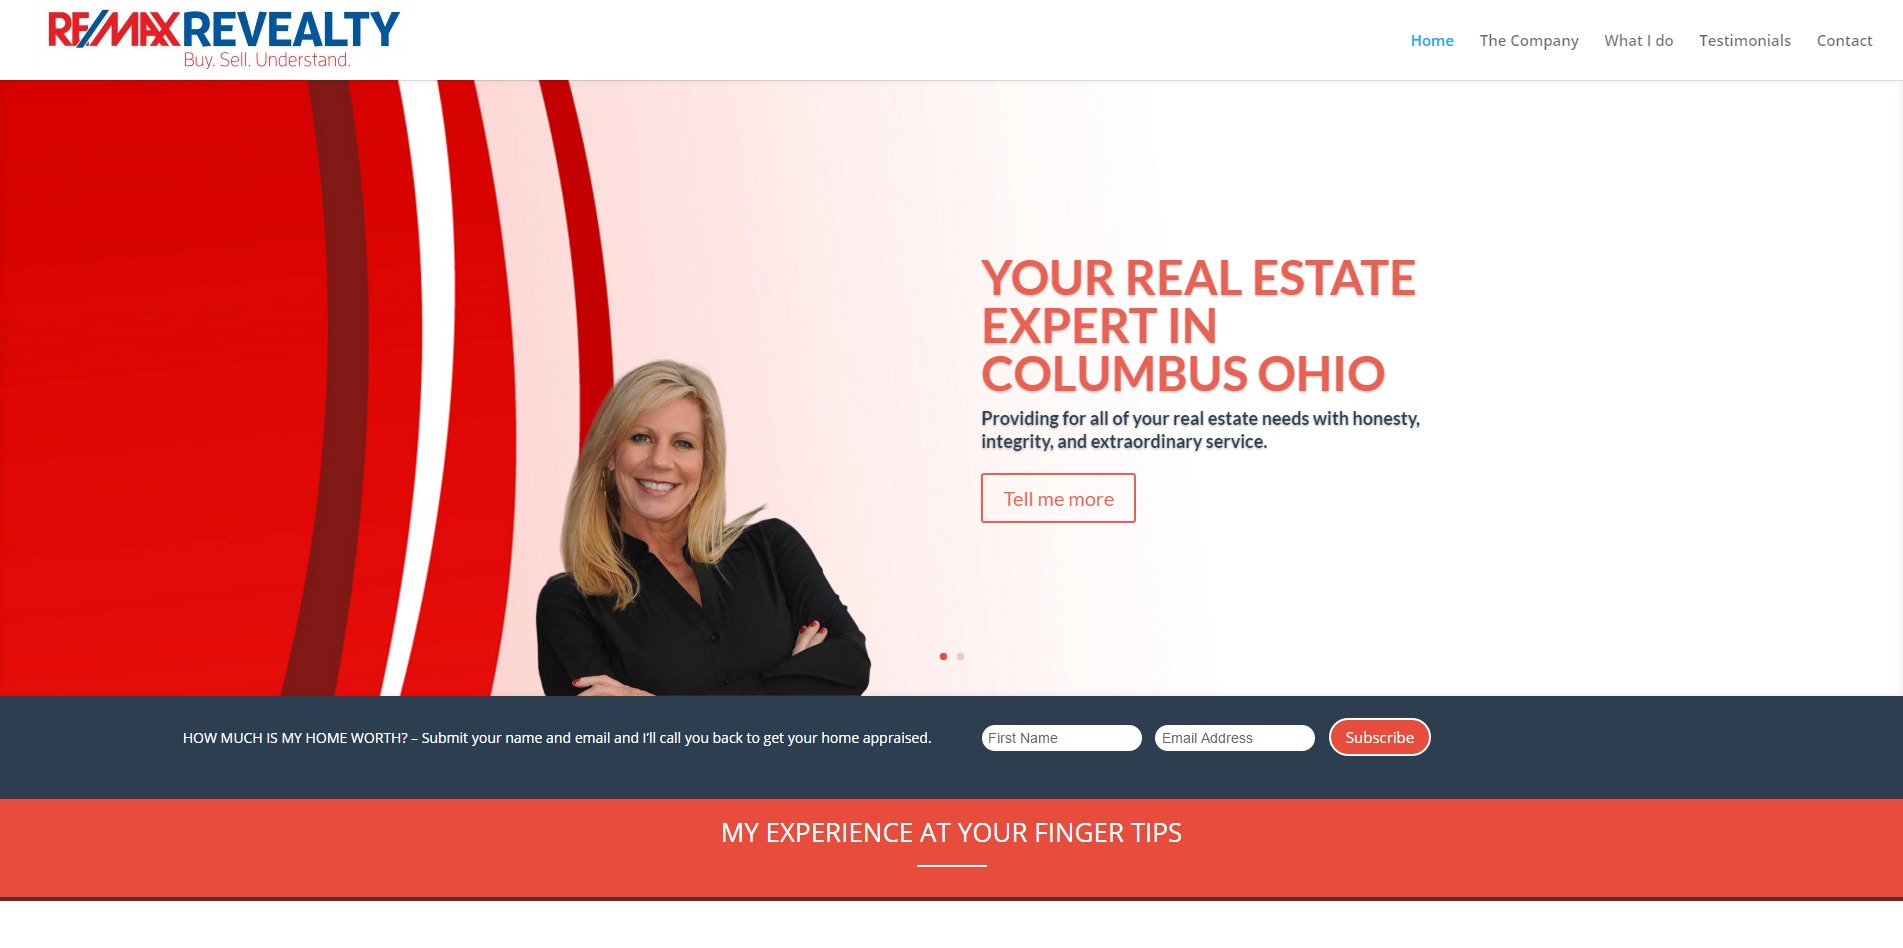 Cyndi Britton - Your Expert Real Estate Agent